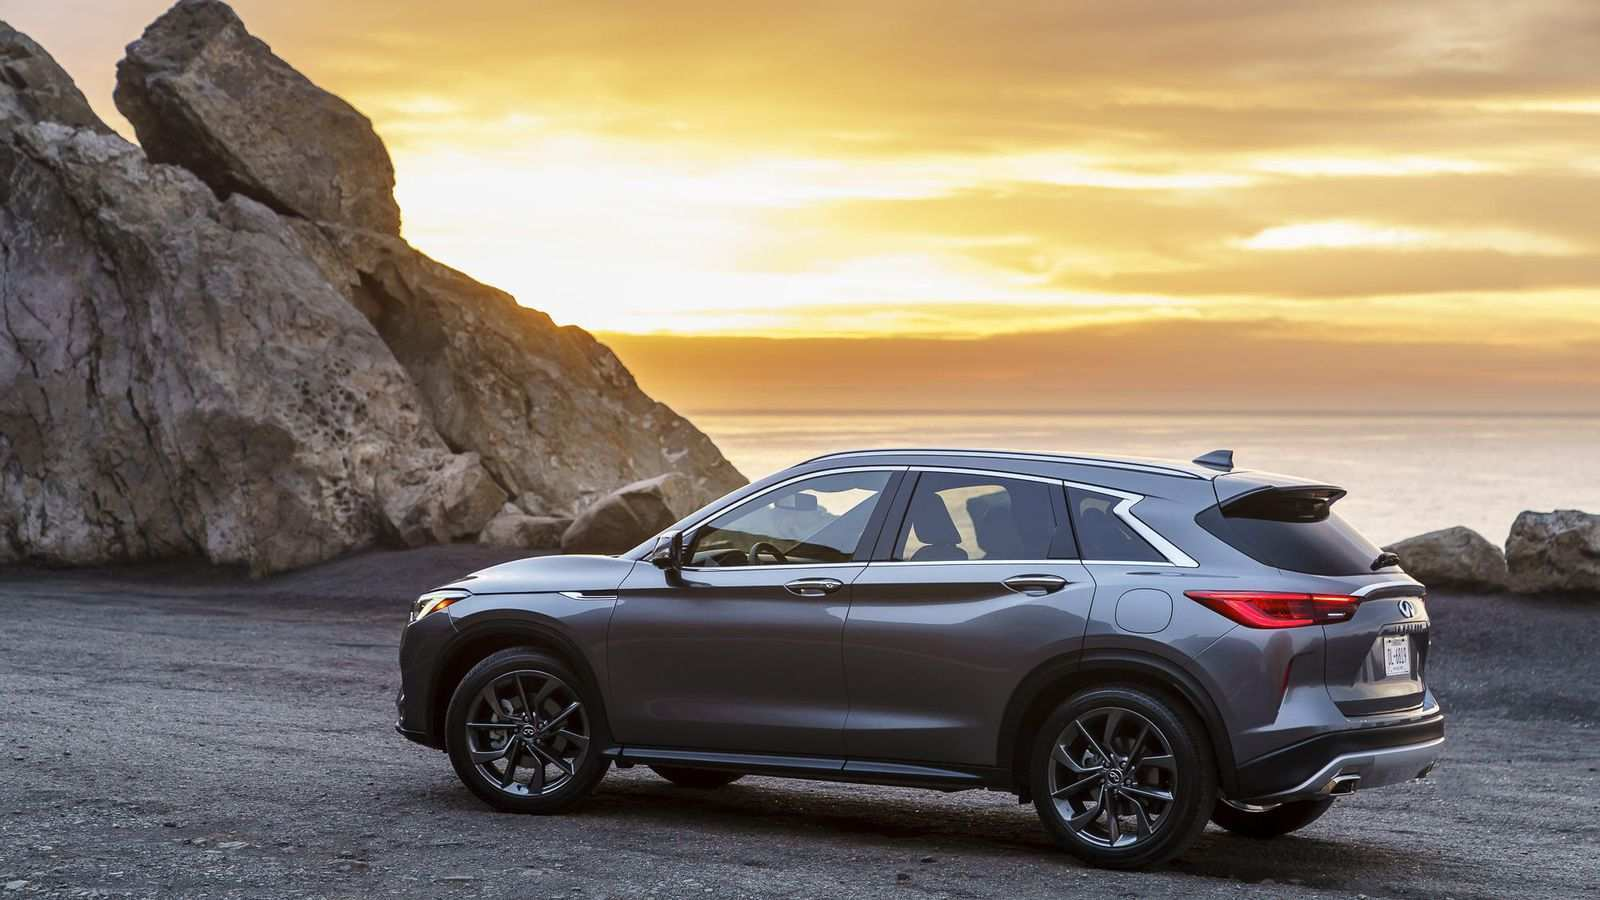 17 New 2019 Infiniti Qx50 Crossover New Review by 2019 Infiniti Qx50 Crossover